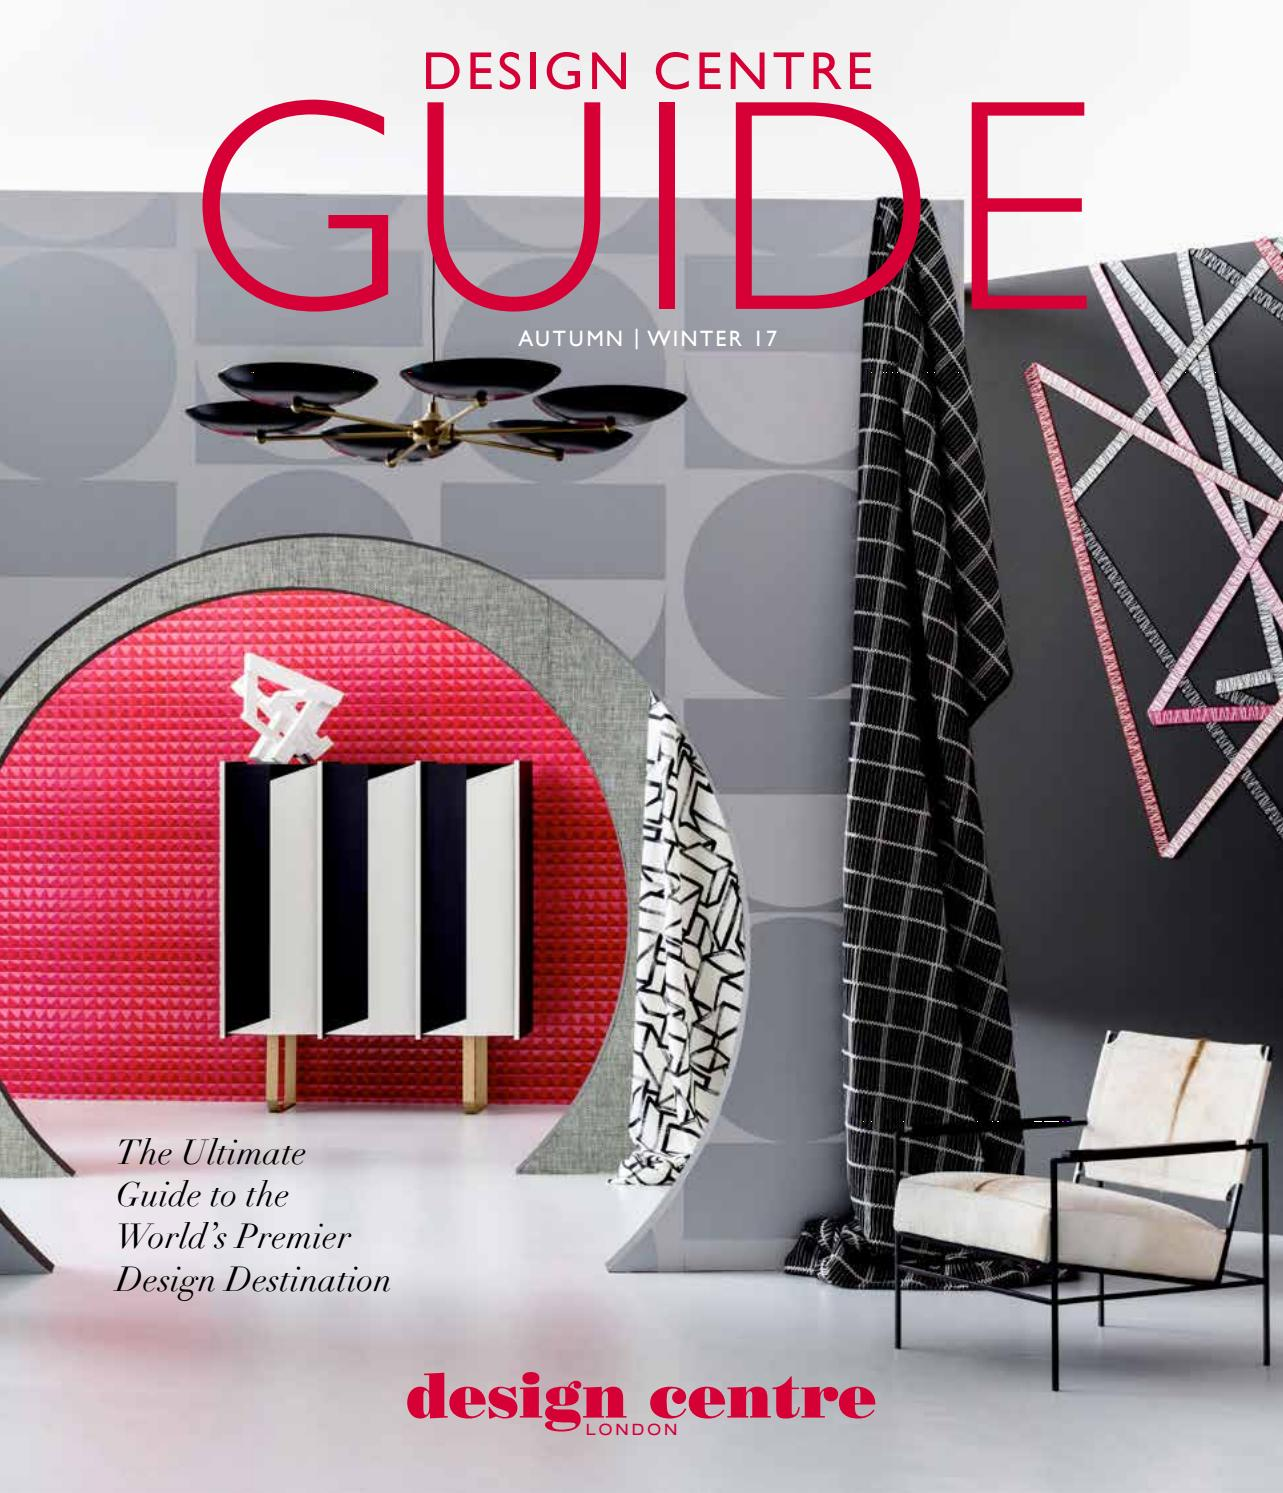 Home Hardware Design Centre   Design Centre Guide Aw17 By Design Centre  Chelsea Harbour Issuu